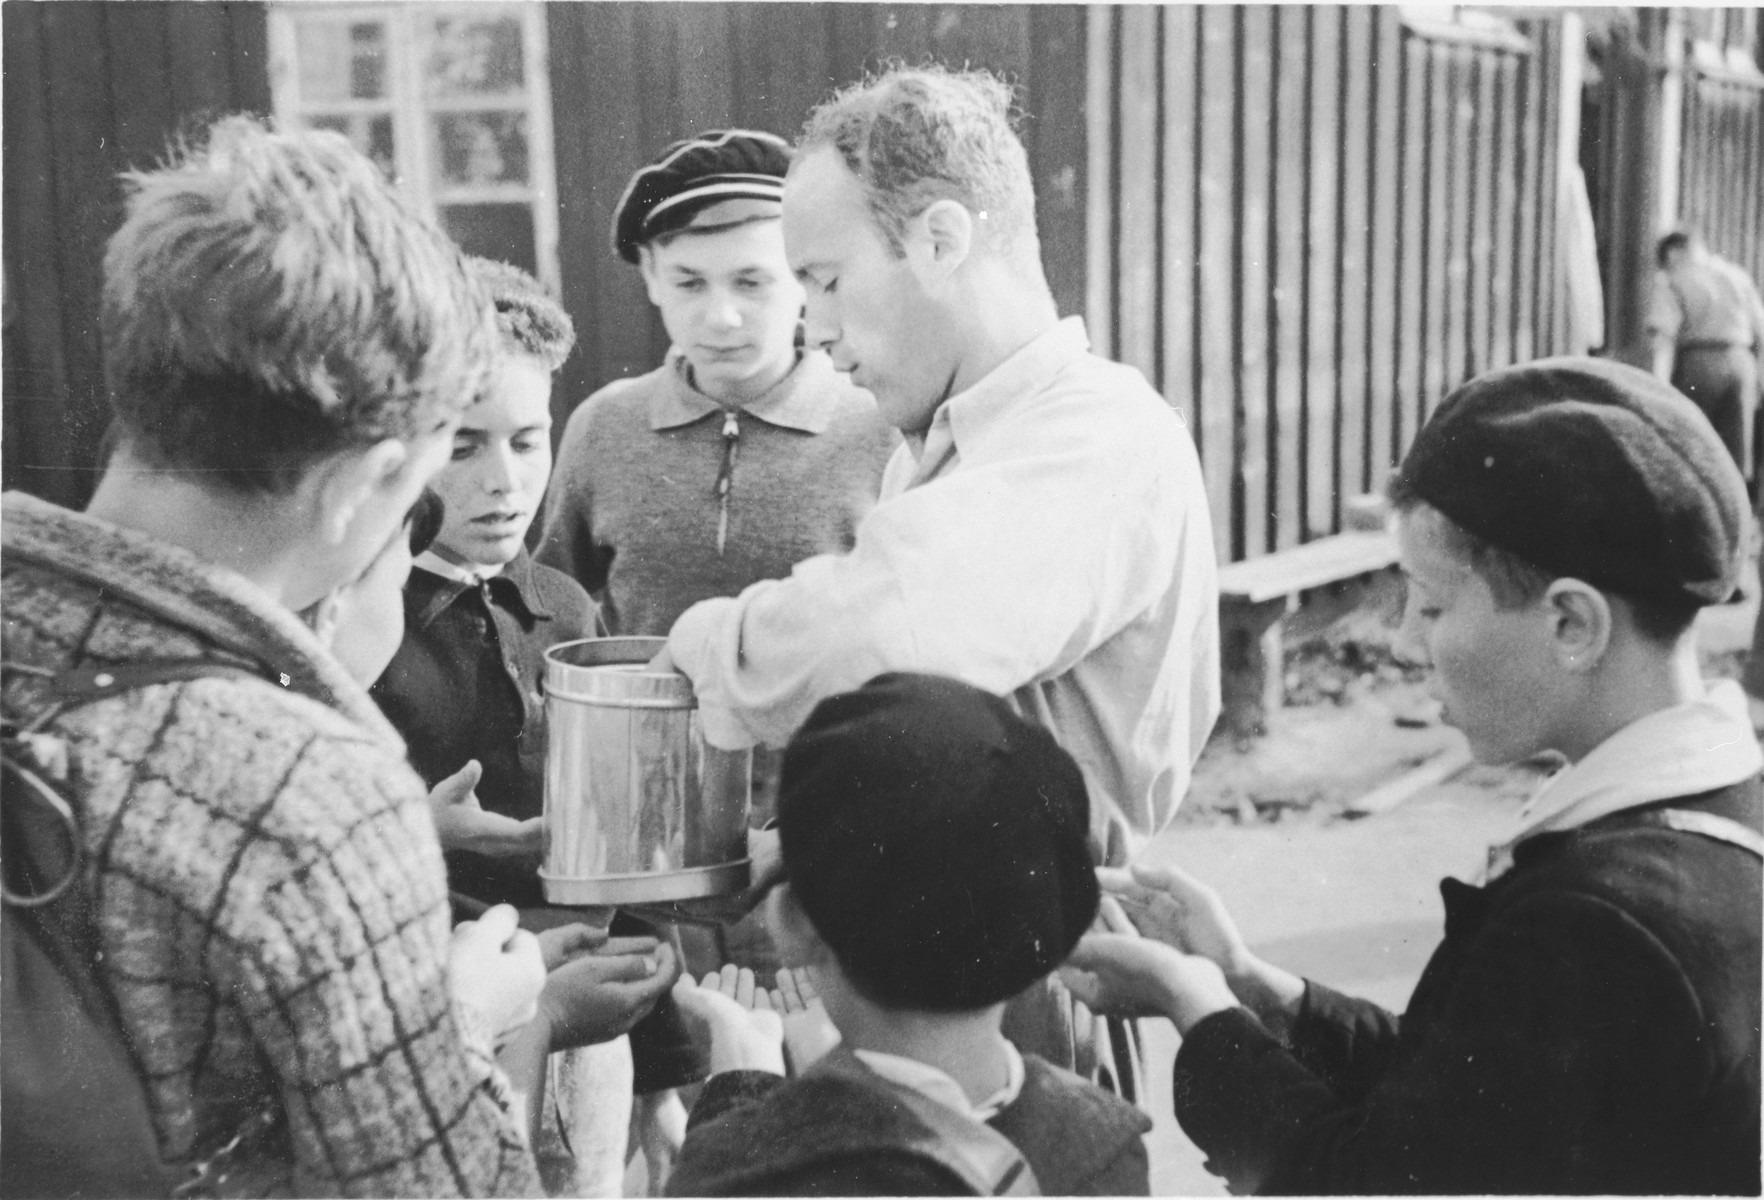 A counselor distributes food or seeds to a group of Jewish boys from Germany at a Kinderlager [children's recreational summer camp] in Horserod, Denmark.    In 1935-36 Norbert Wollheim was involved in organizing groups of German Jewish youth to attend a summer camp in Denmark.